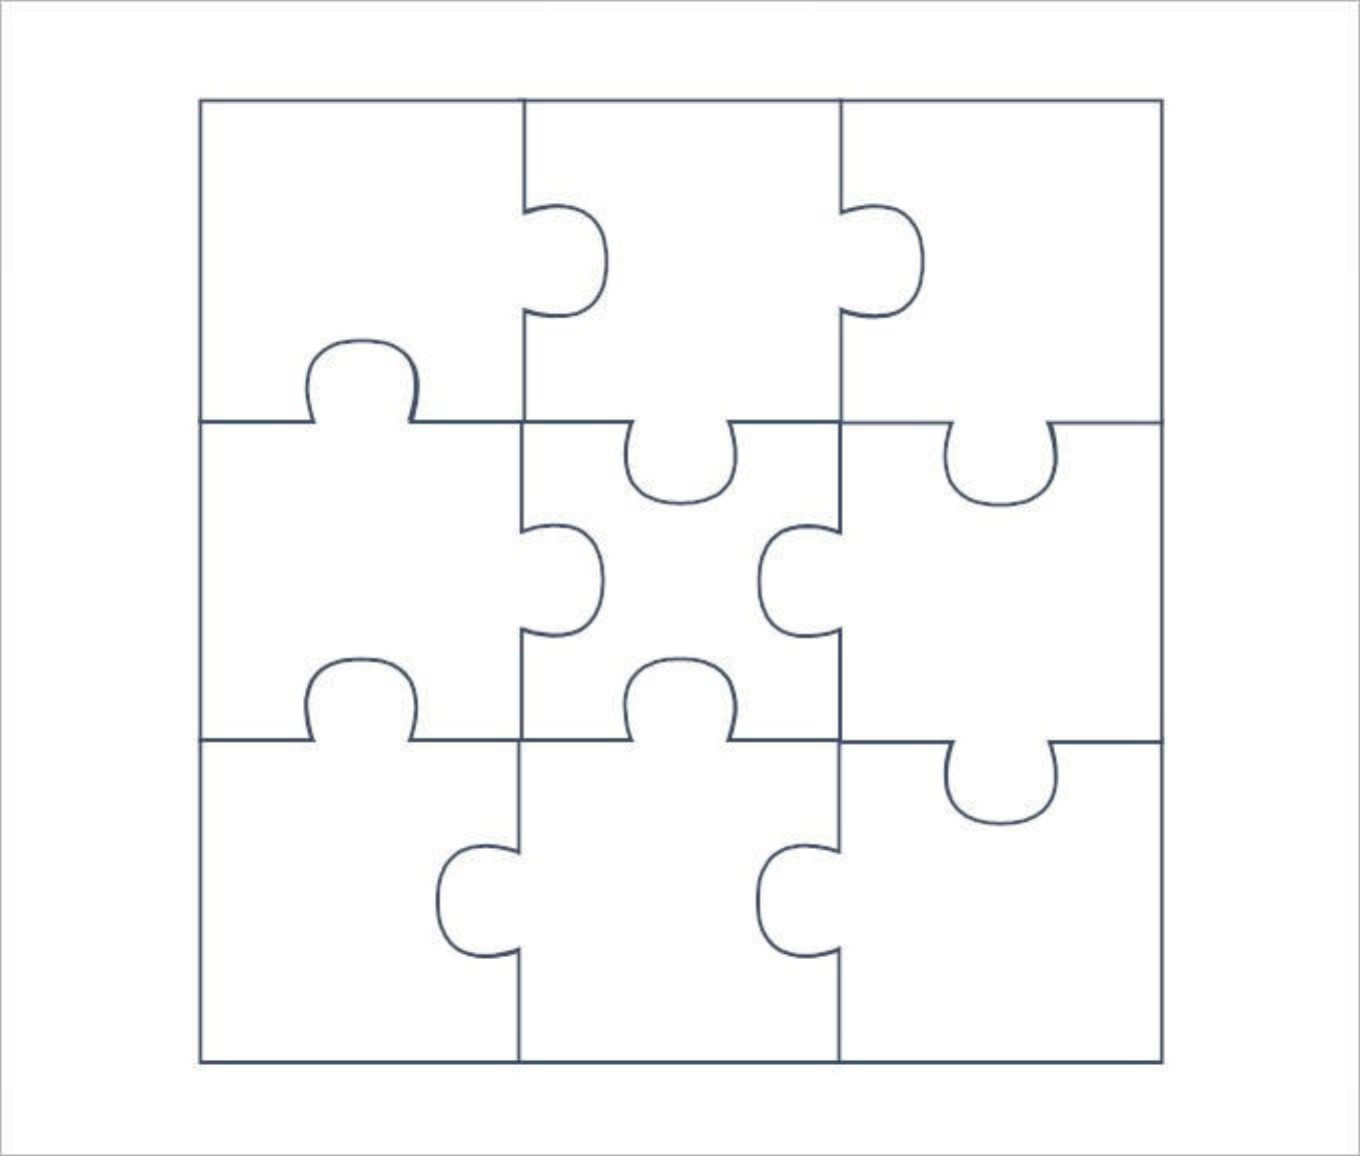 Blank Puzzle Pieces Template Download Blank Puzzle Pieces Template for Free Tidytemplates